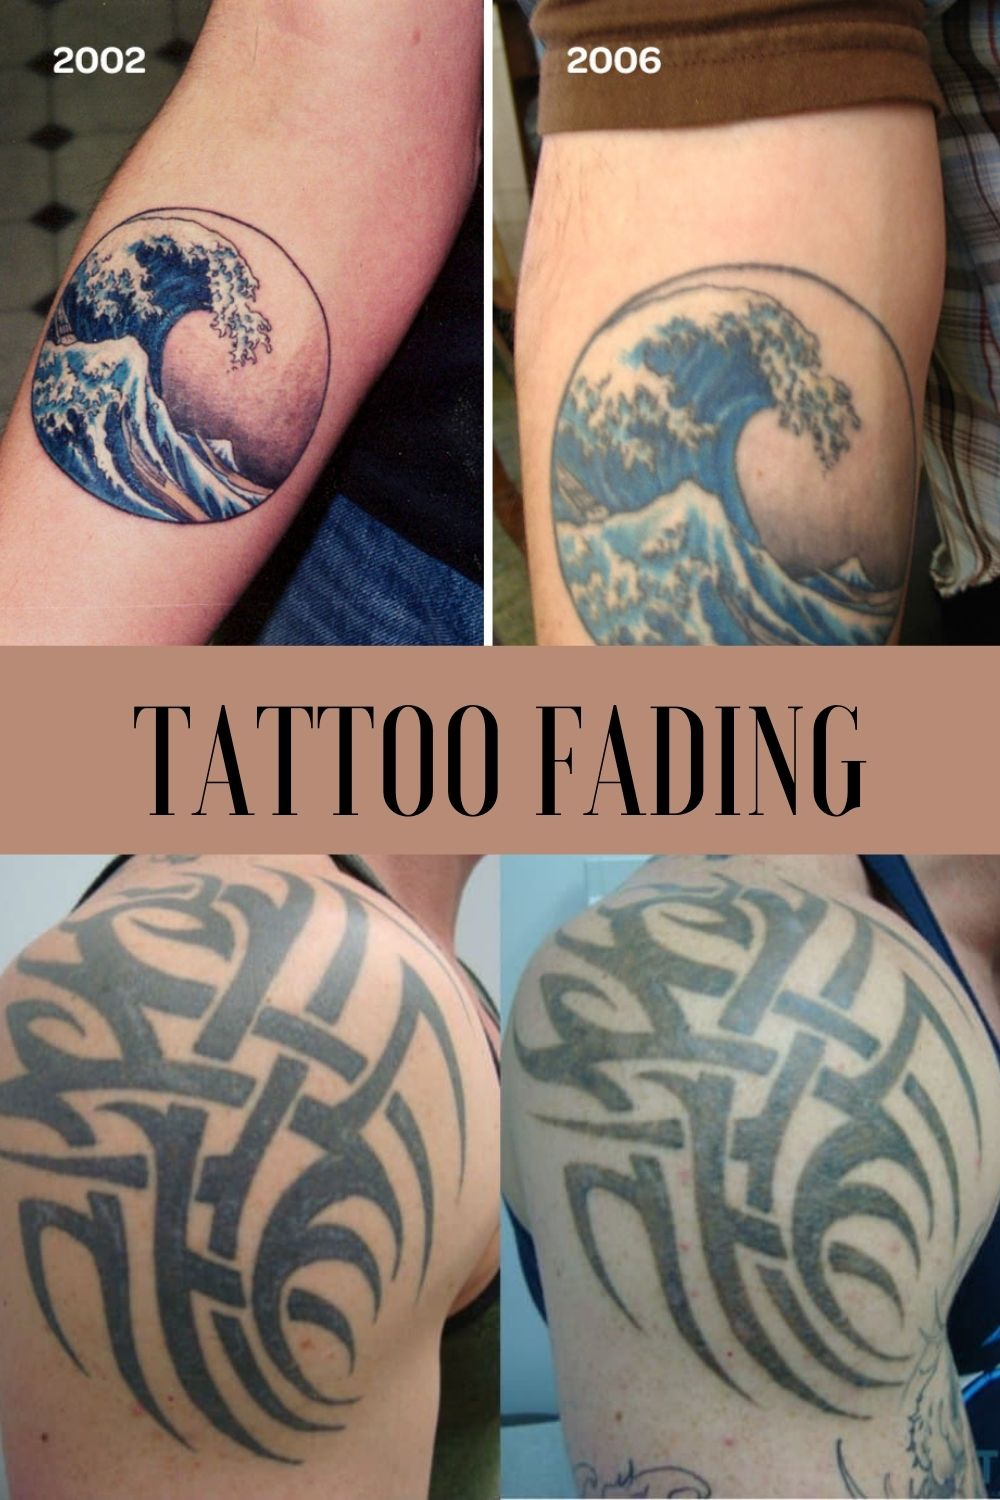 What is Tattoo Fading & How to prevent it